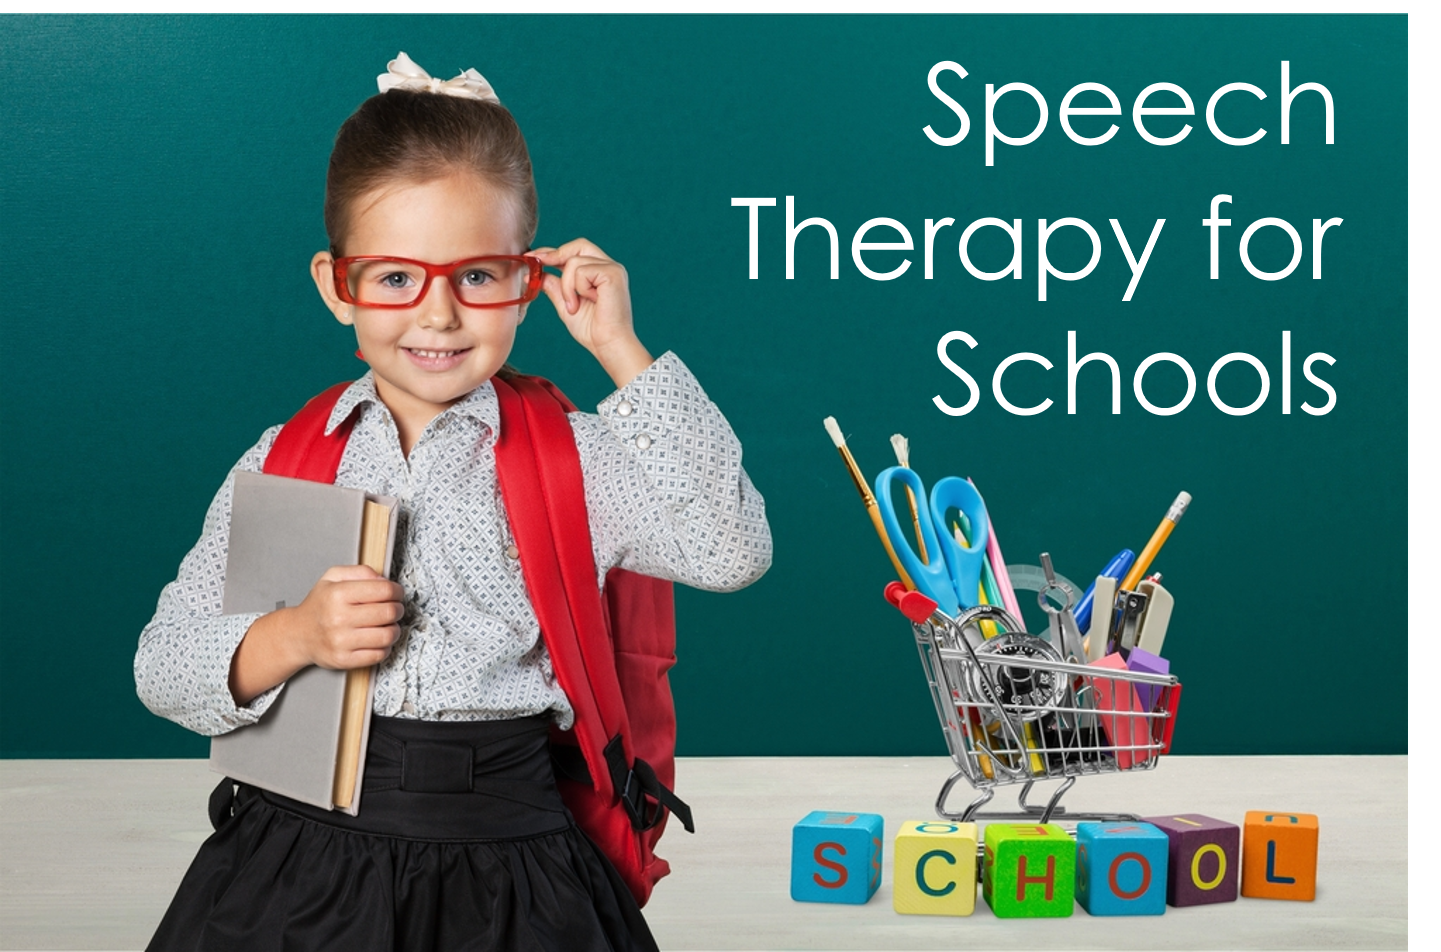 Speech Therapy for Schools